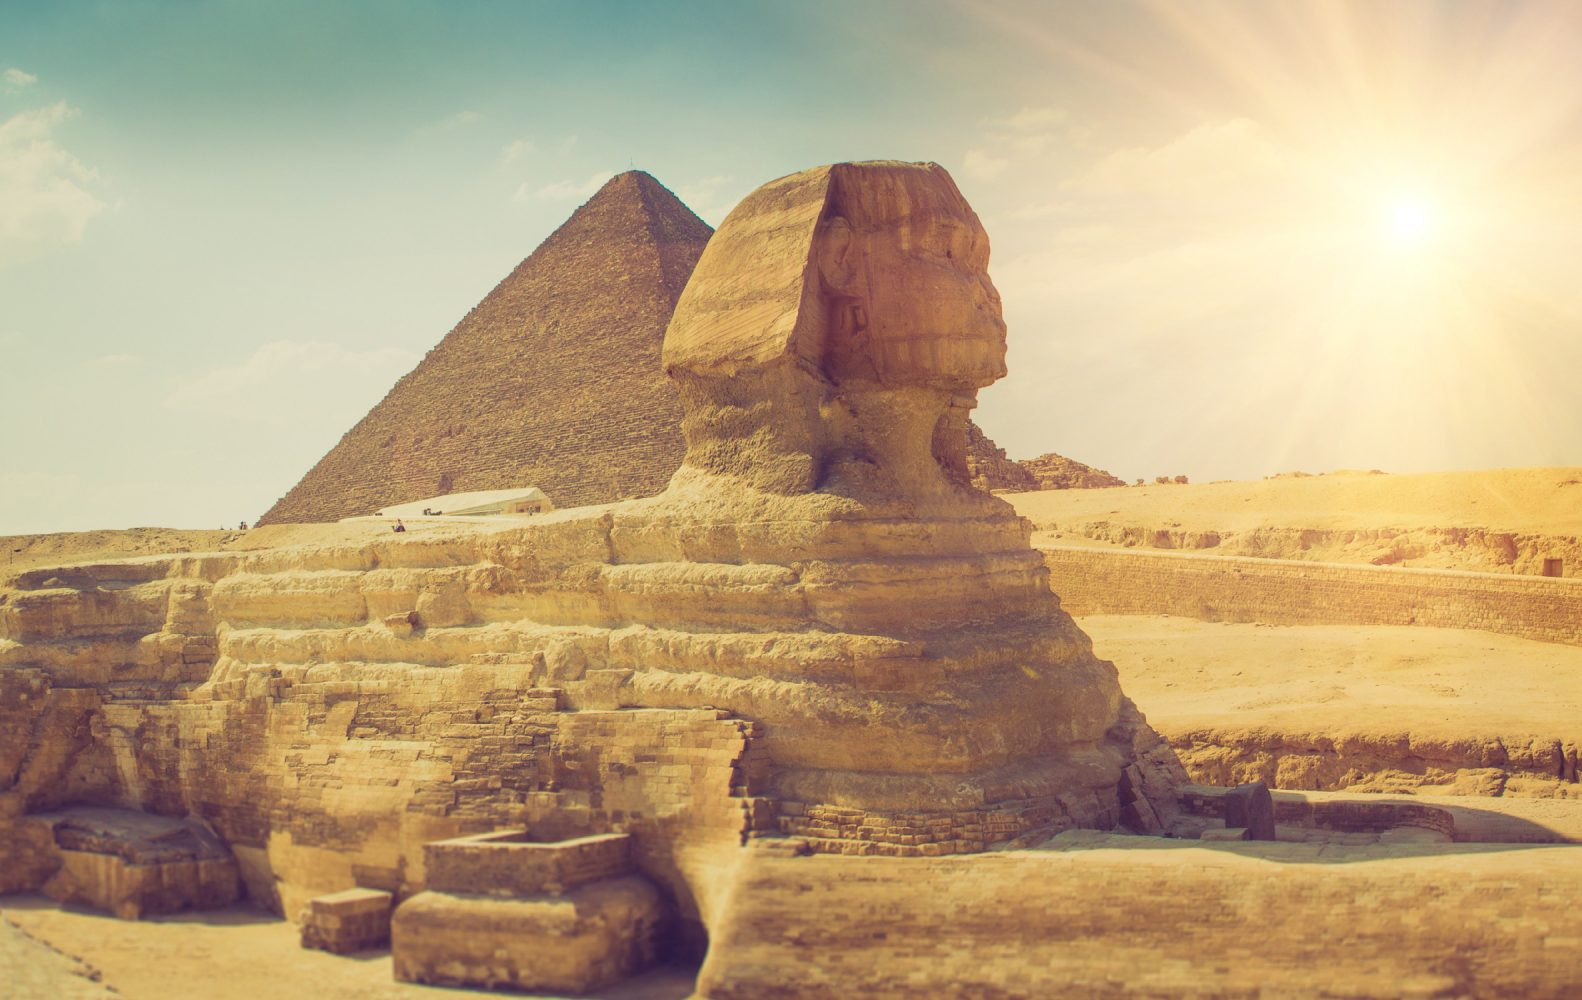 Panoramic,View,Of,The,Full,Profile,Of,The,Great,Sphinx